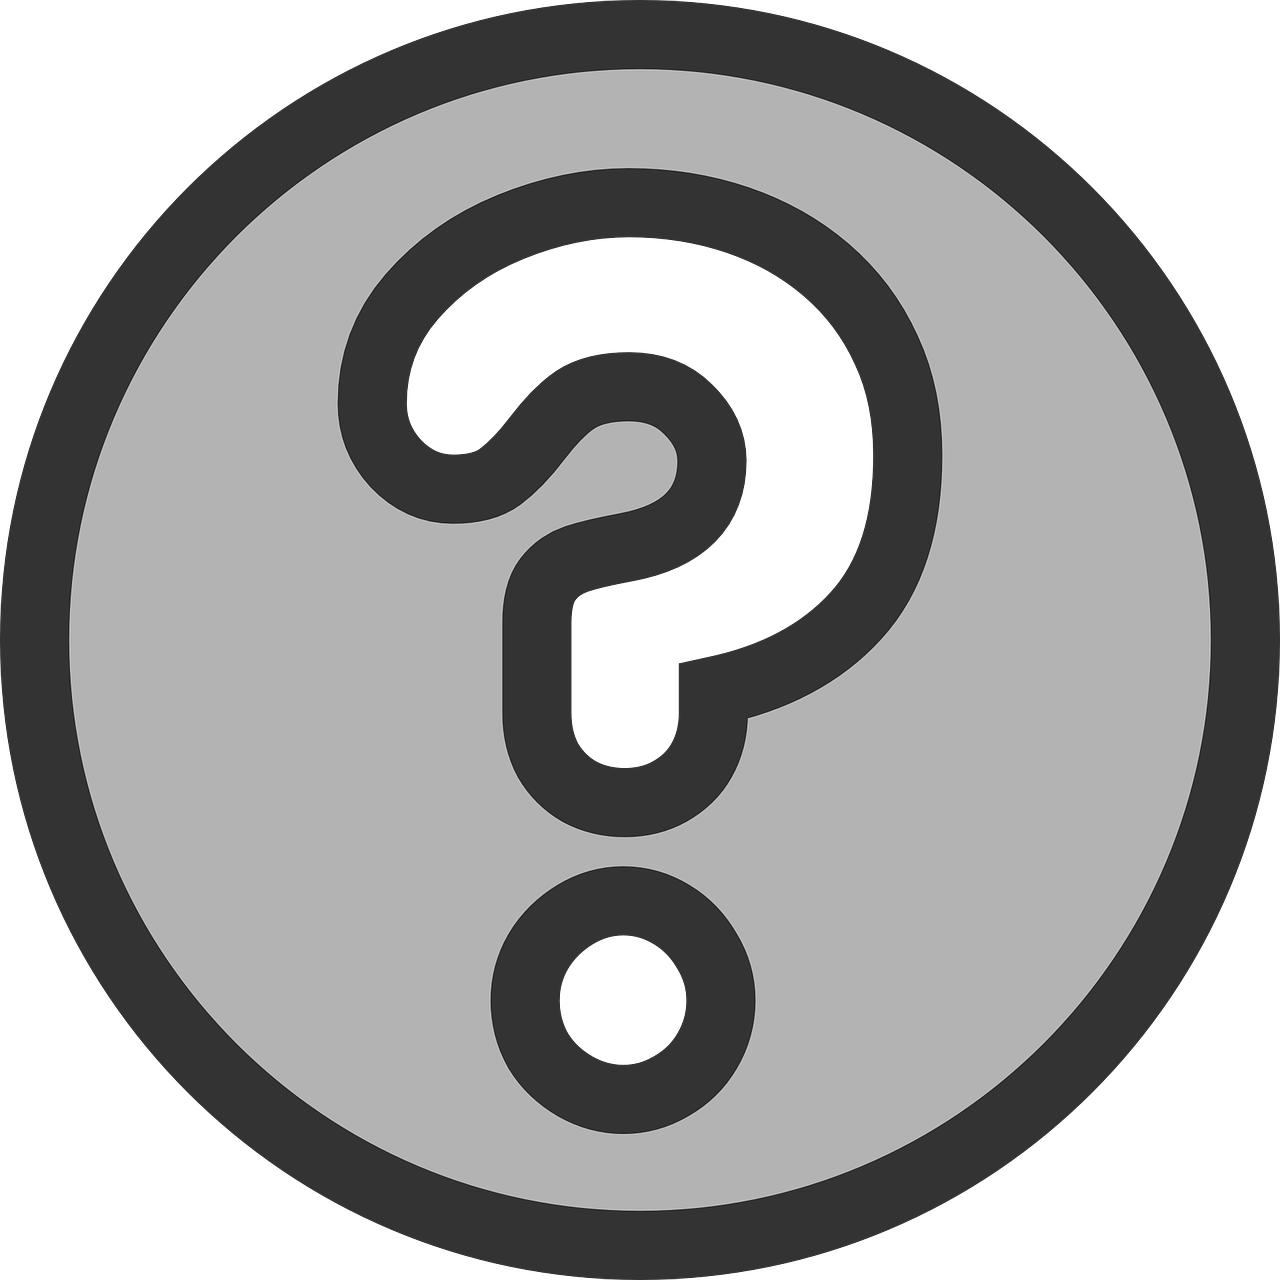 Question face question mark face clipart.